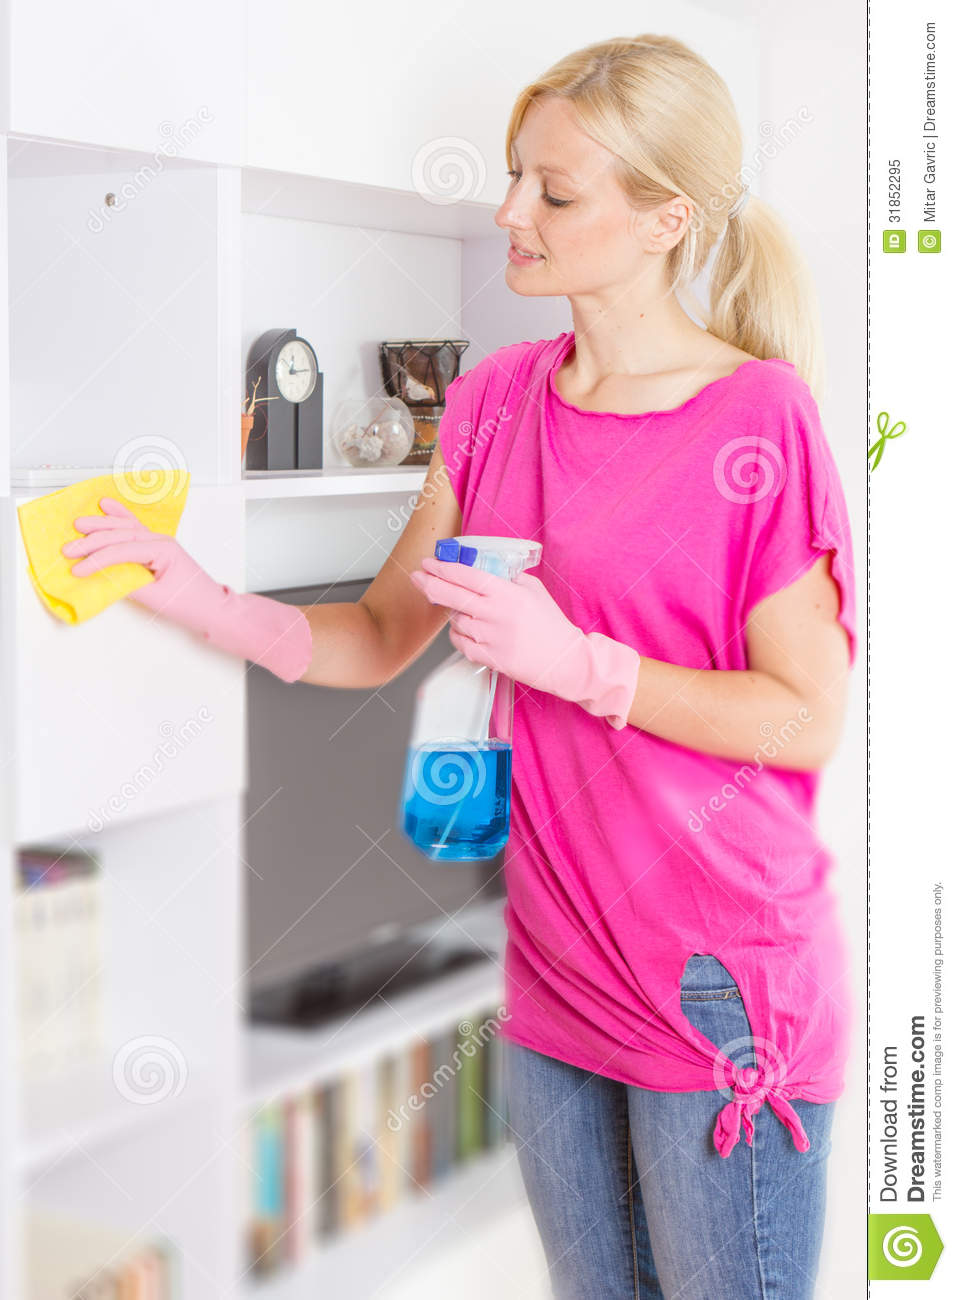 Woman cleaning home royalty free stock photo image 31852295 for House cleaning stock photos